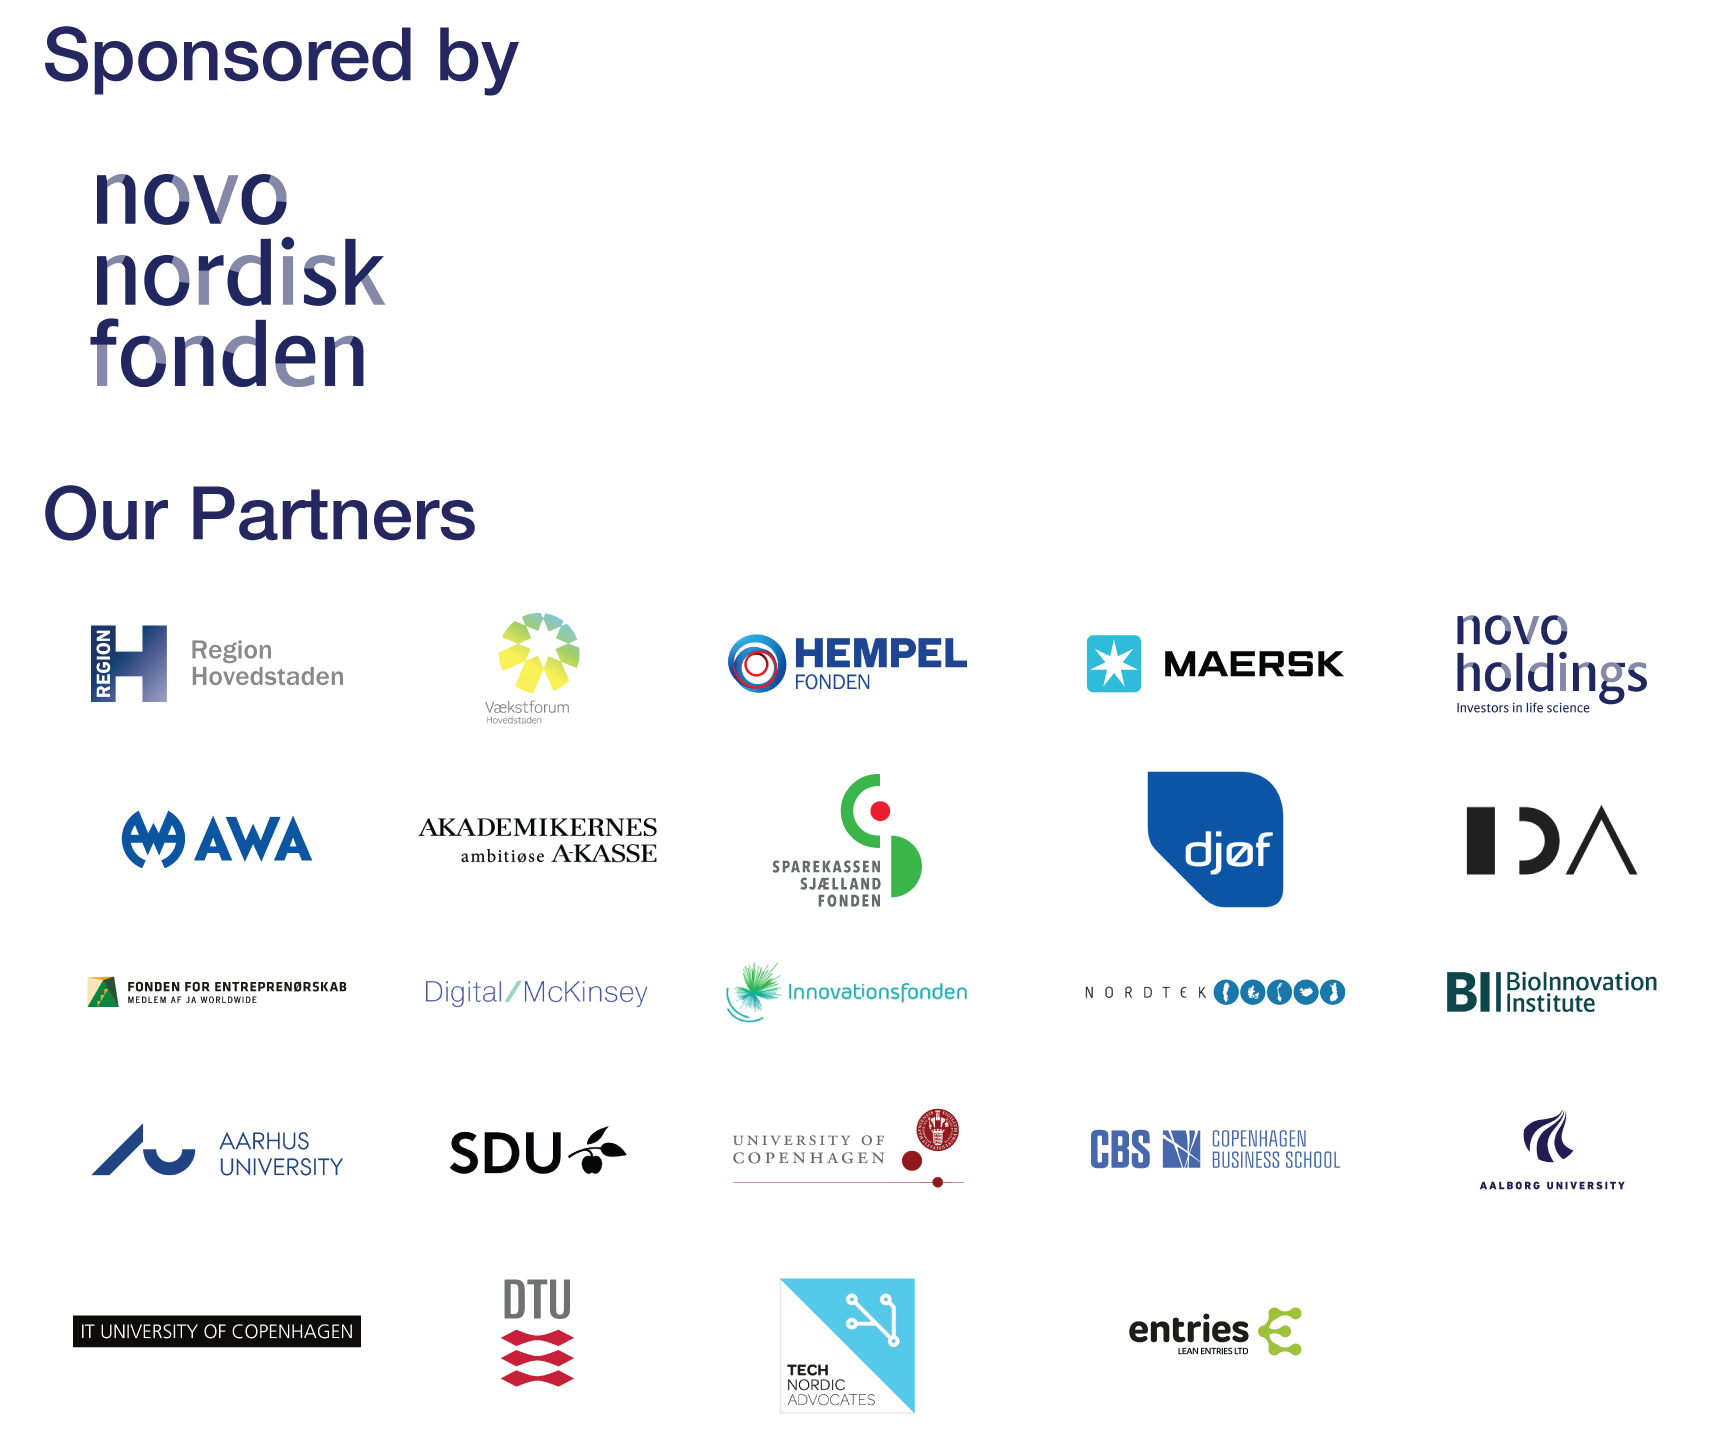 Nordic HealthTech Talents- Brought to you by